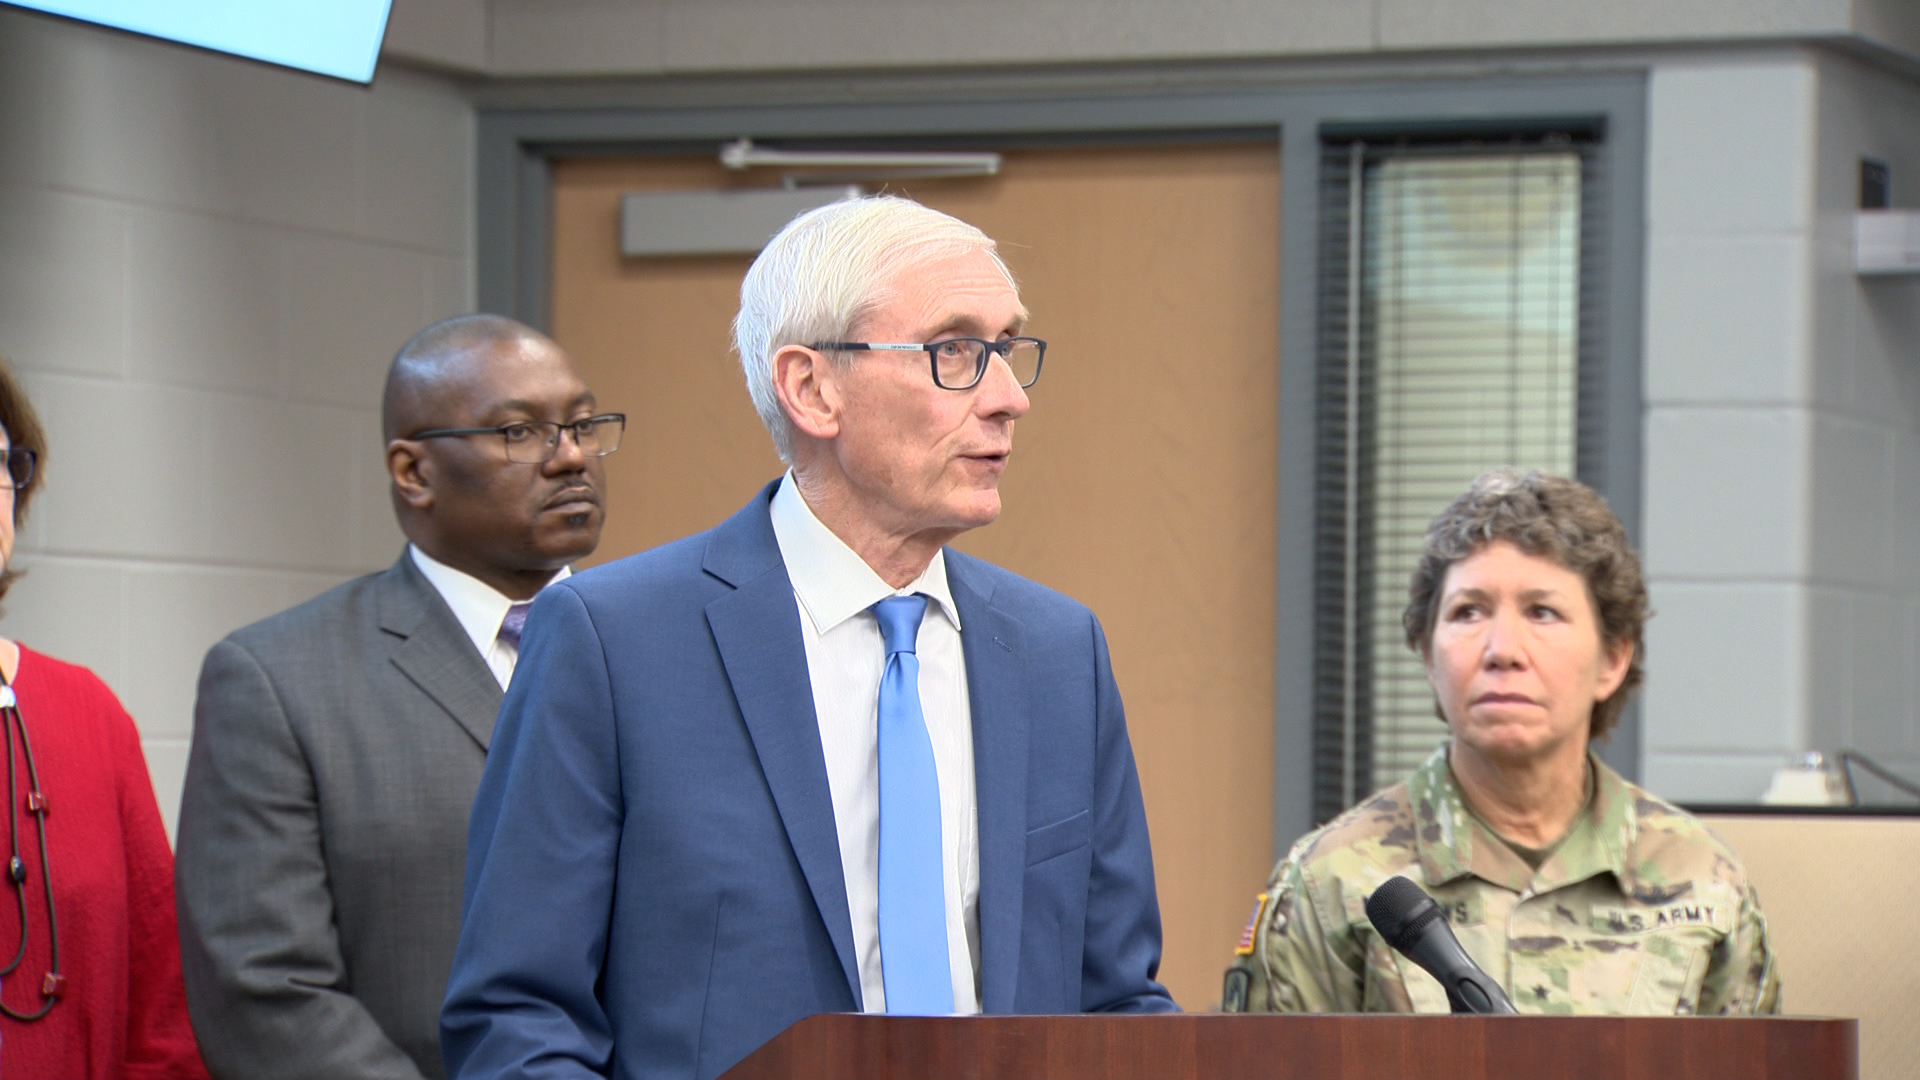 Tony Evers - Governor of Wisconsin stands at a podium at a press conference